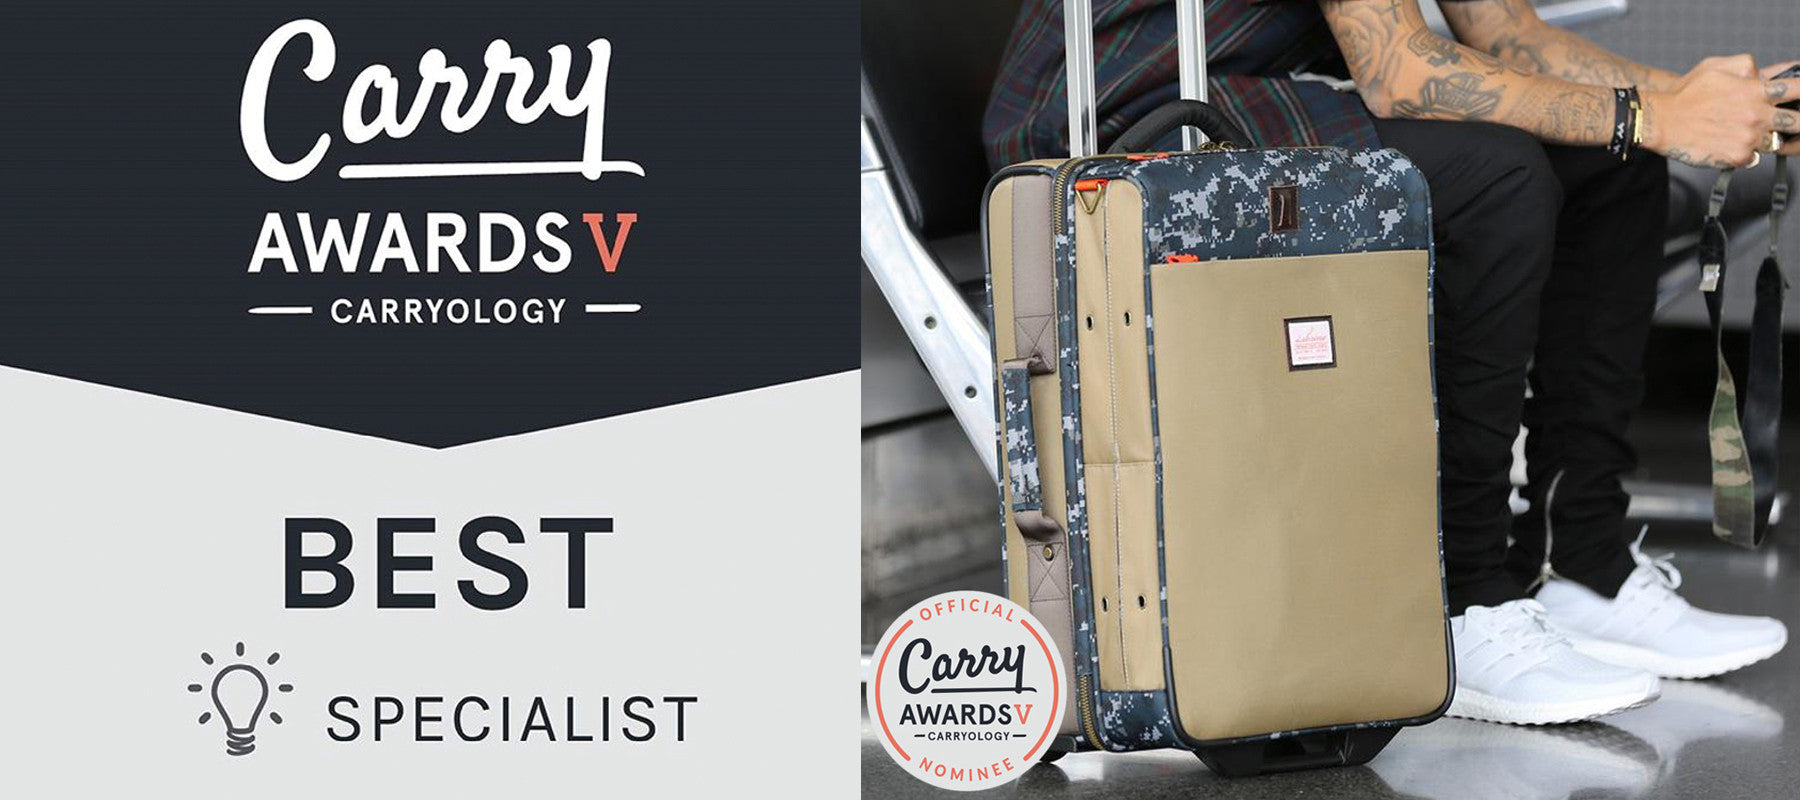 Our Luggage design is nominated for a Carryology Award!